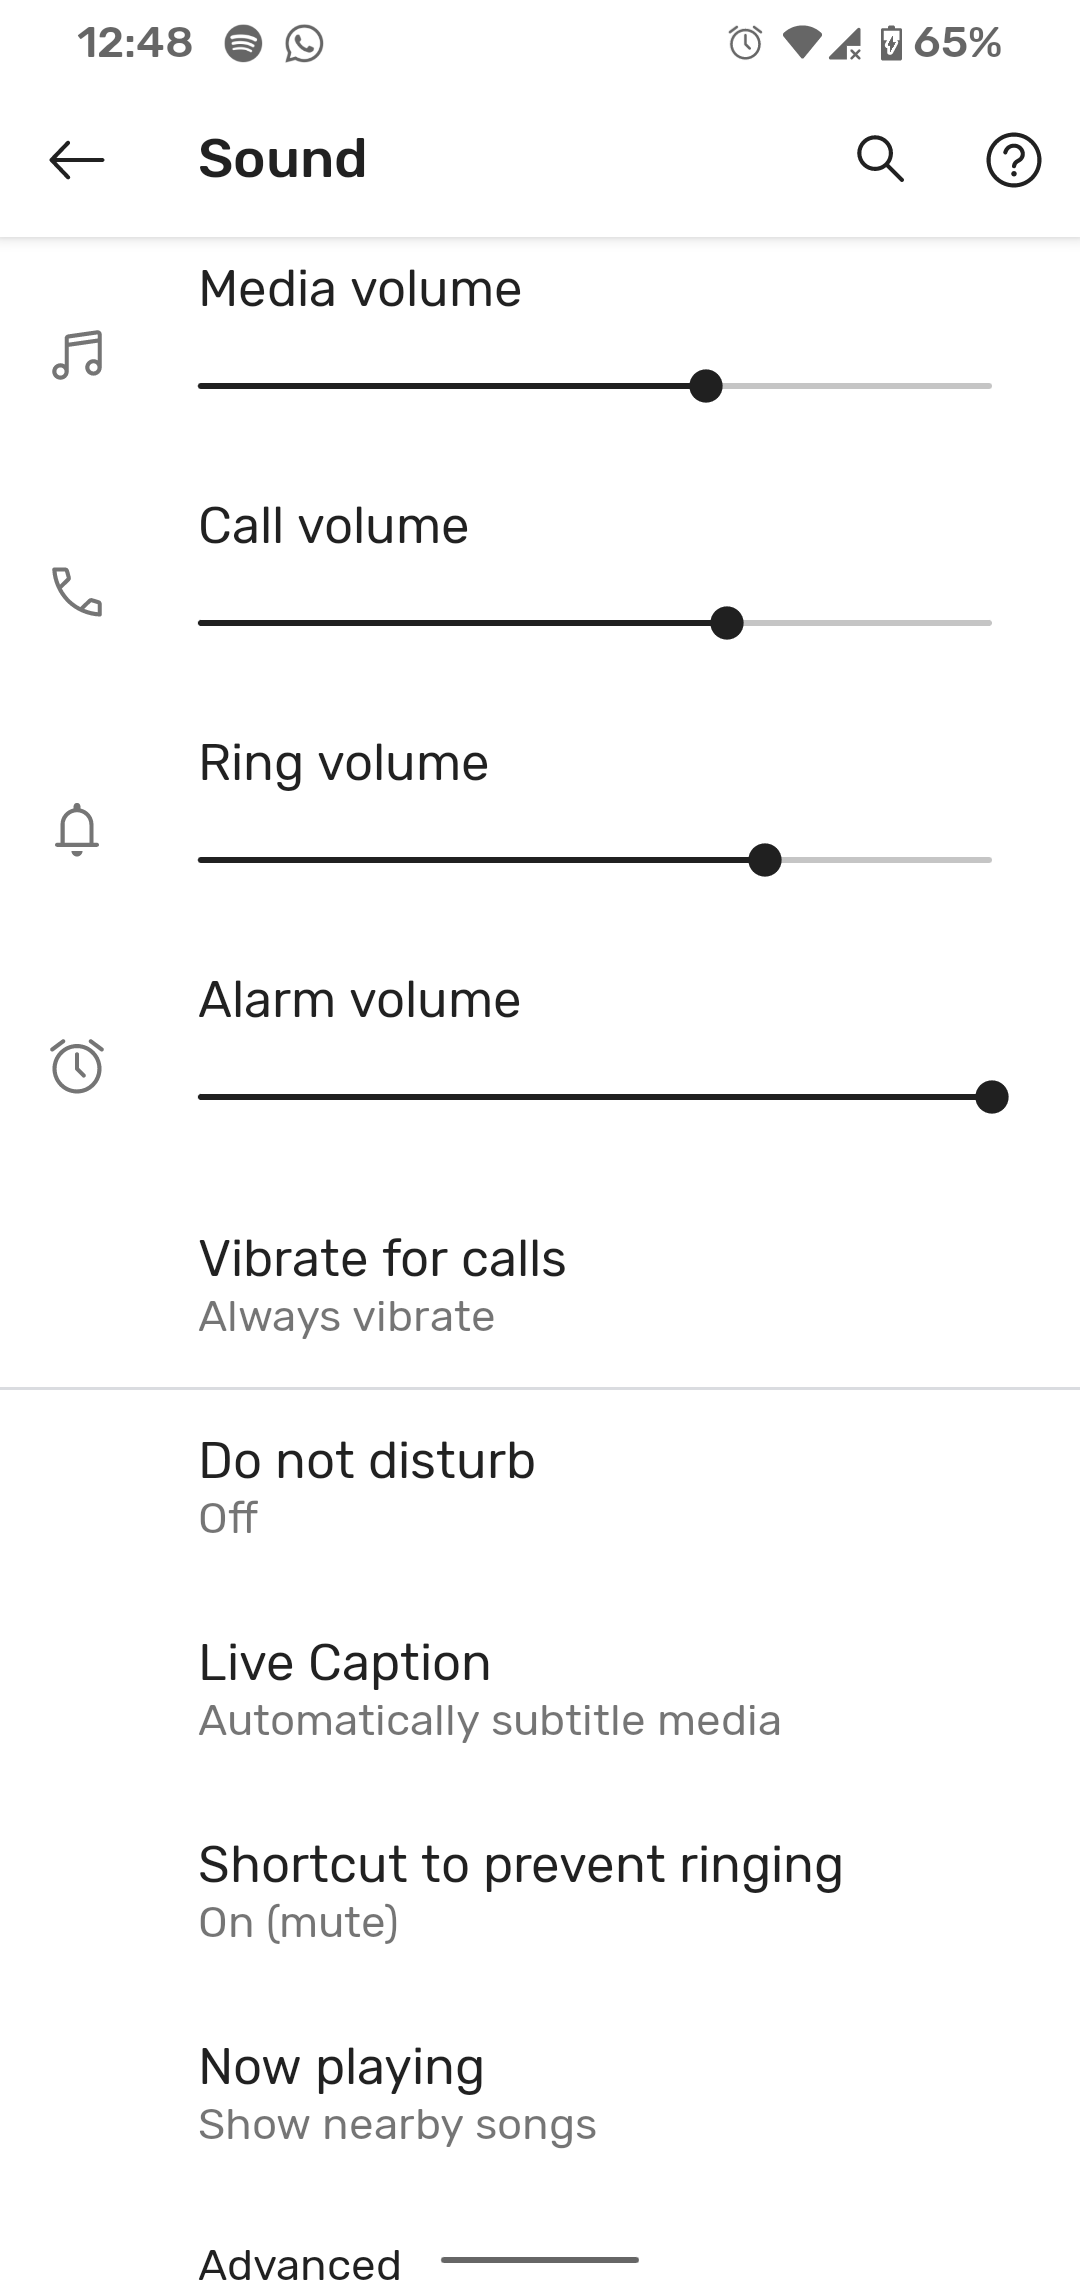 Fix To No Sound On Pixel 4 After Android 10 Update Pixel Phone Community